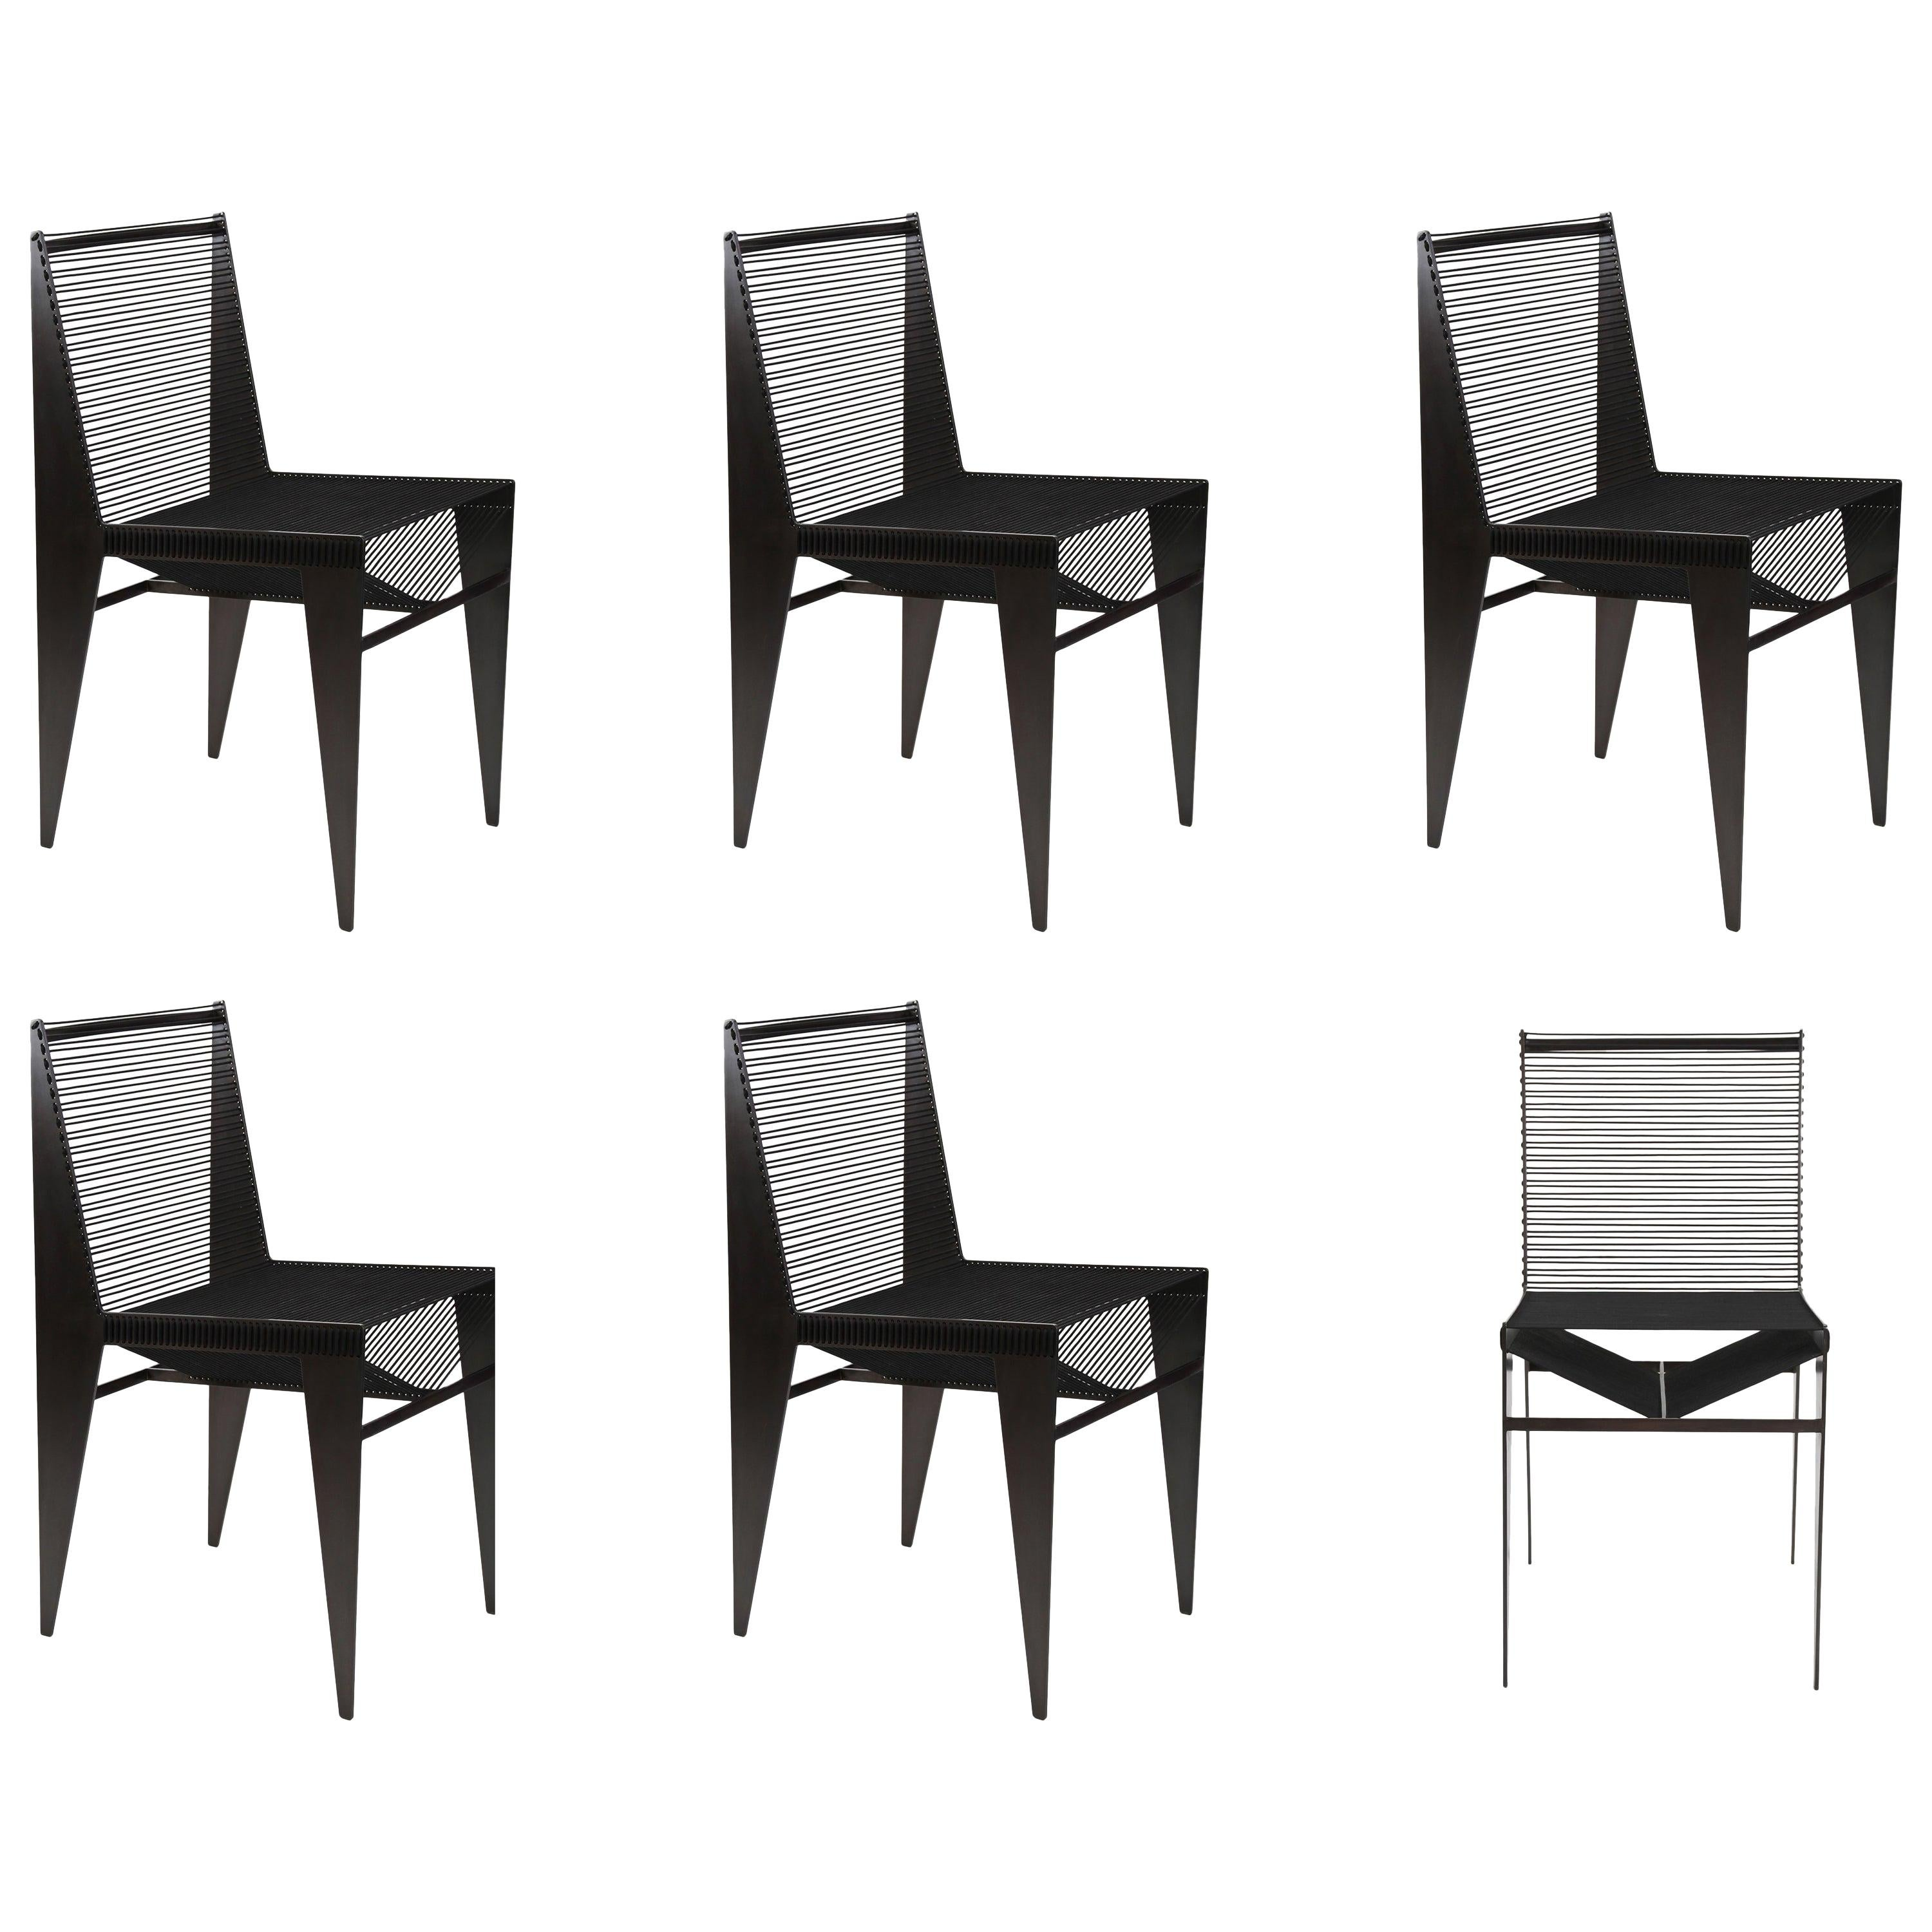 Set of 6 - ICON Chairs, 2020, powder coated steel & rope by Christopher Kreiling